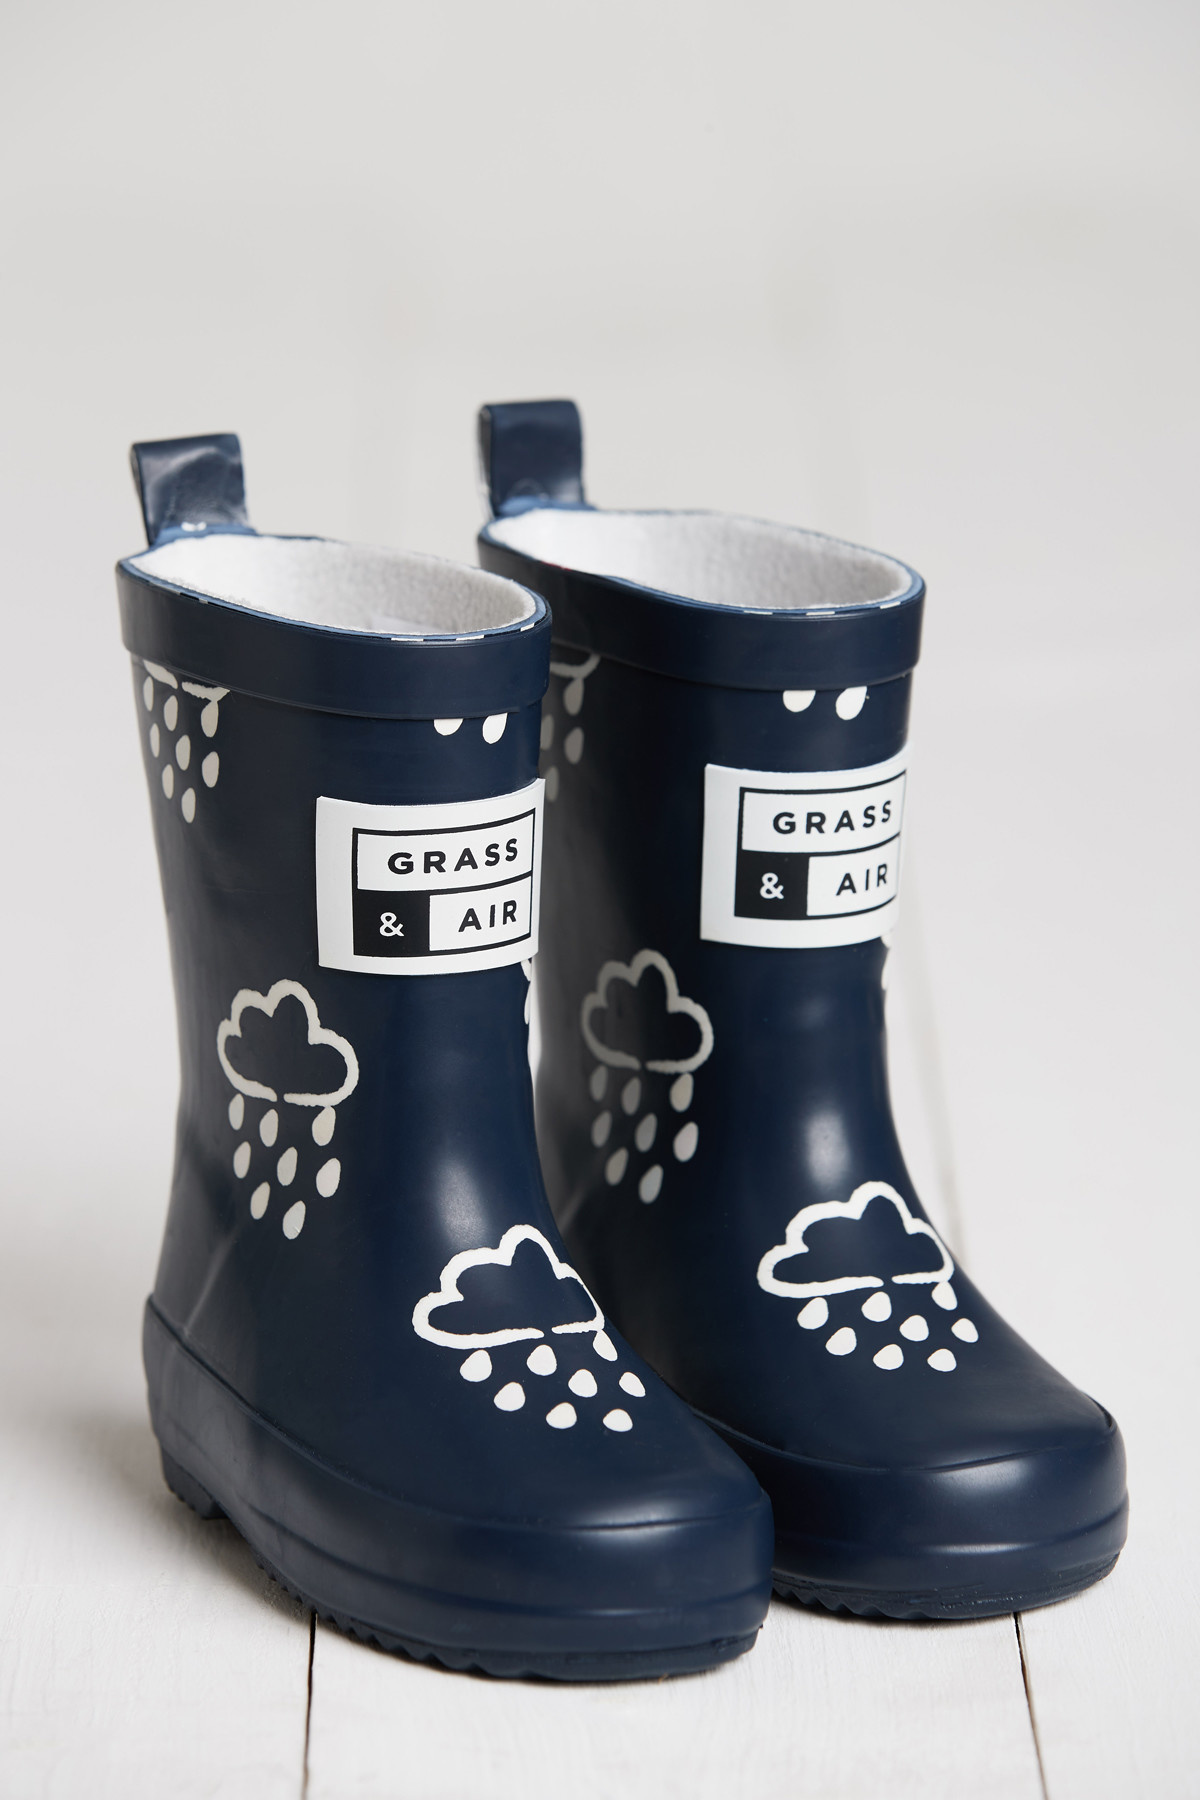 Grass And Air Grass and Air Colour Revealing Wellington Boots Navy